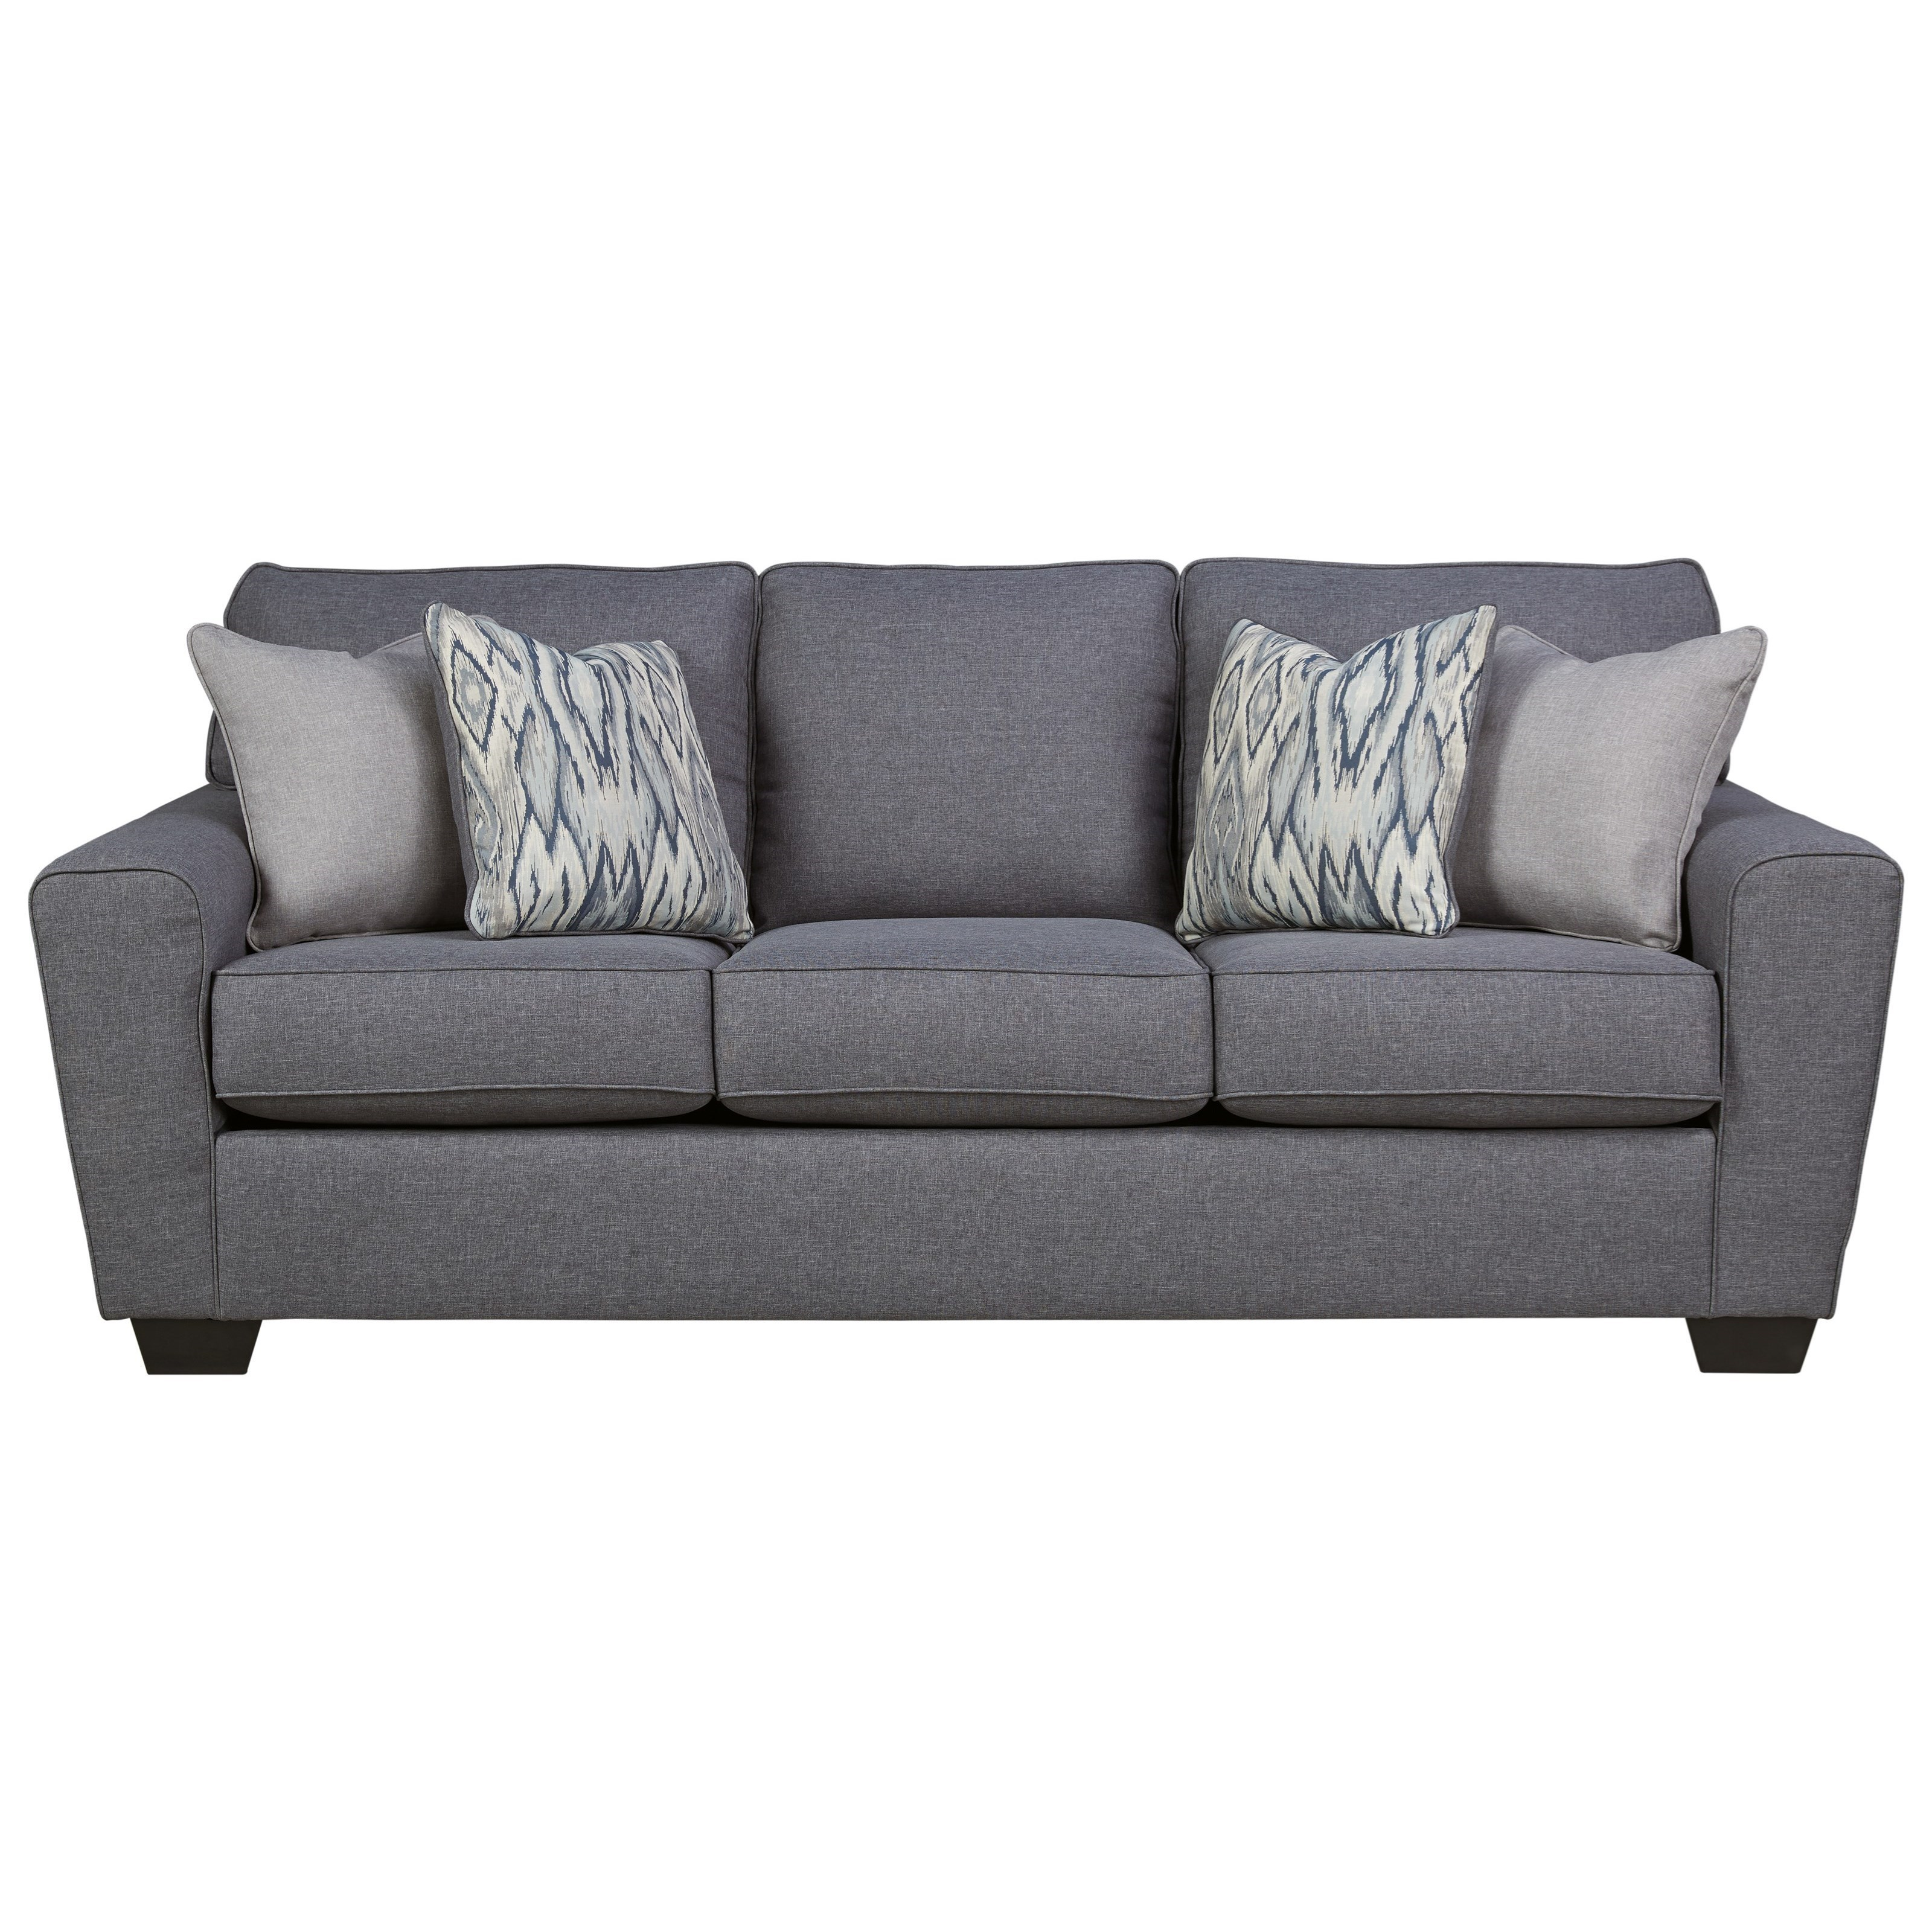 ashley furniture calion 2070239 contemporary queen sofa sleeper with rh furnitureappliancemart com ashley furniture queen sleeper sofa ashley zeb queen sleeper sofa